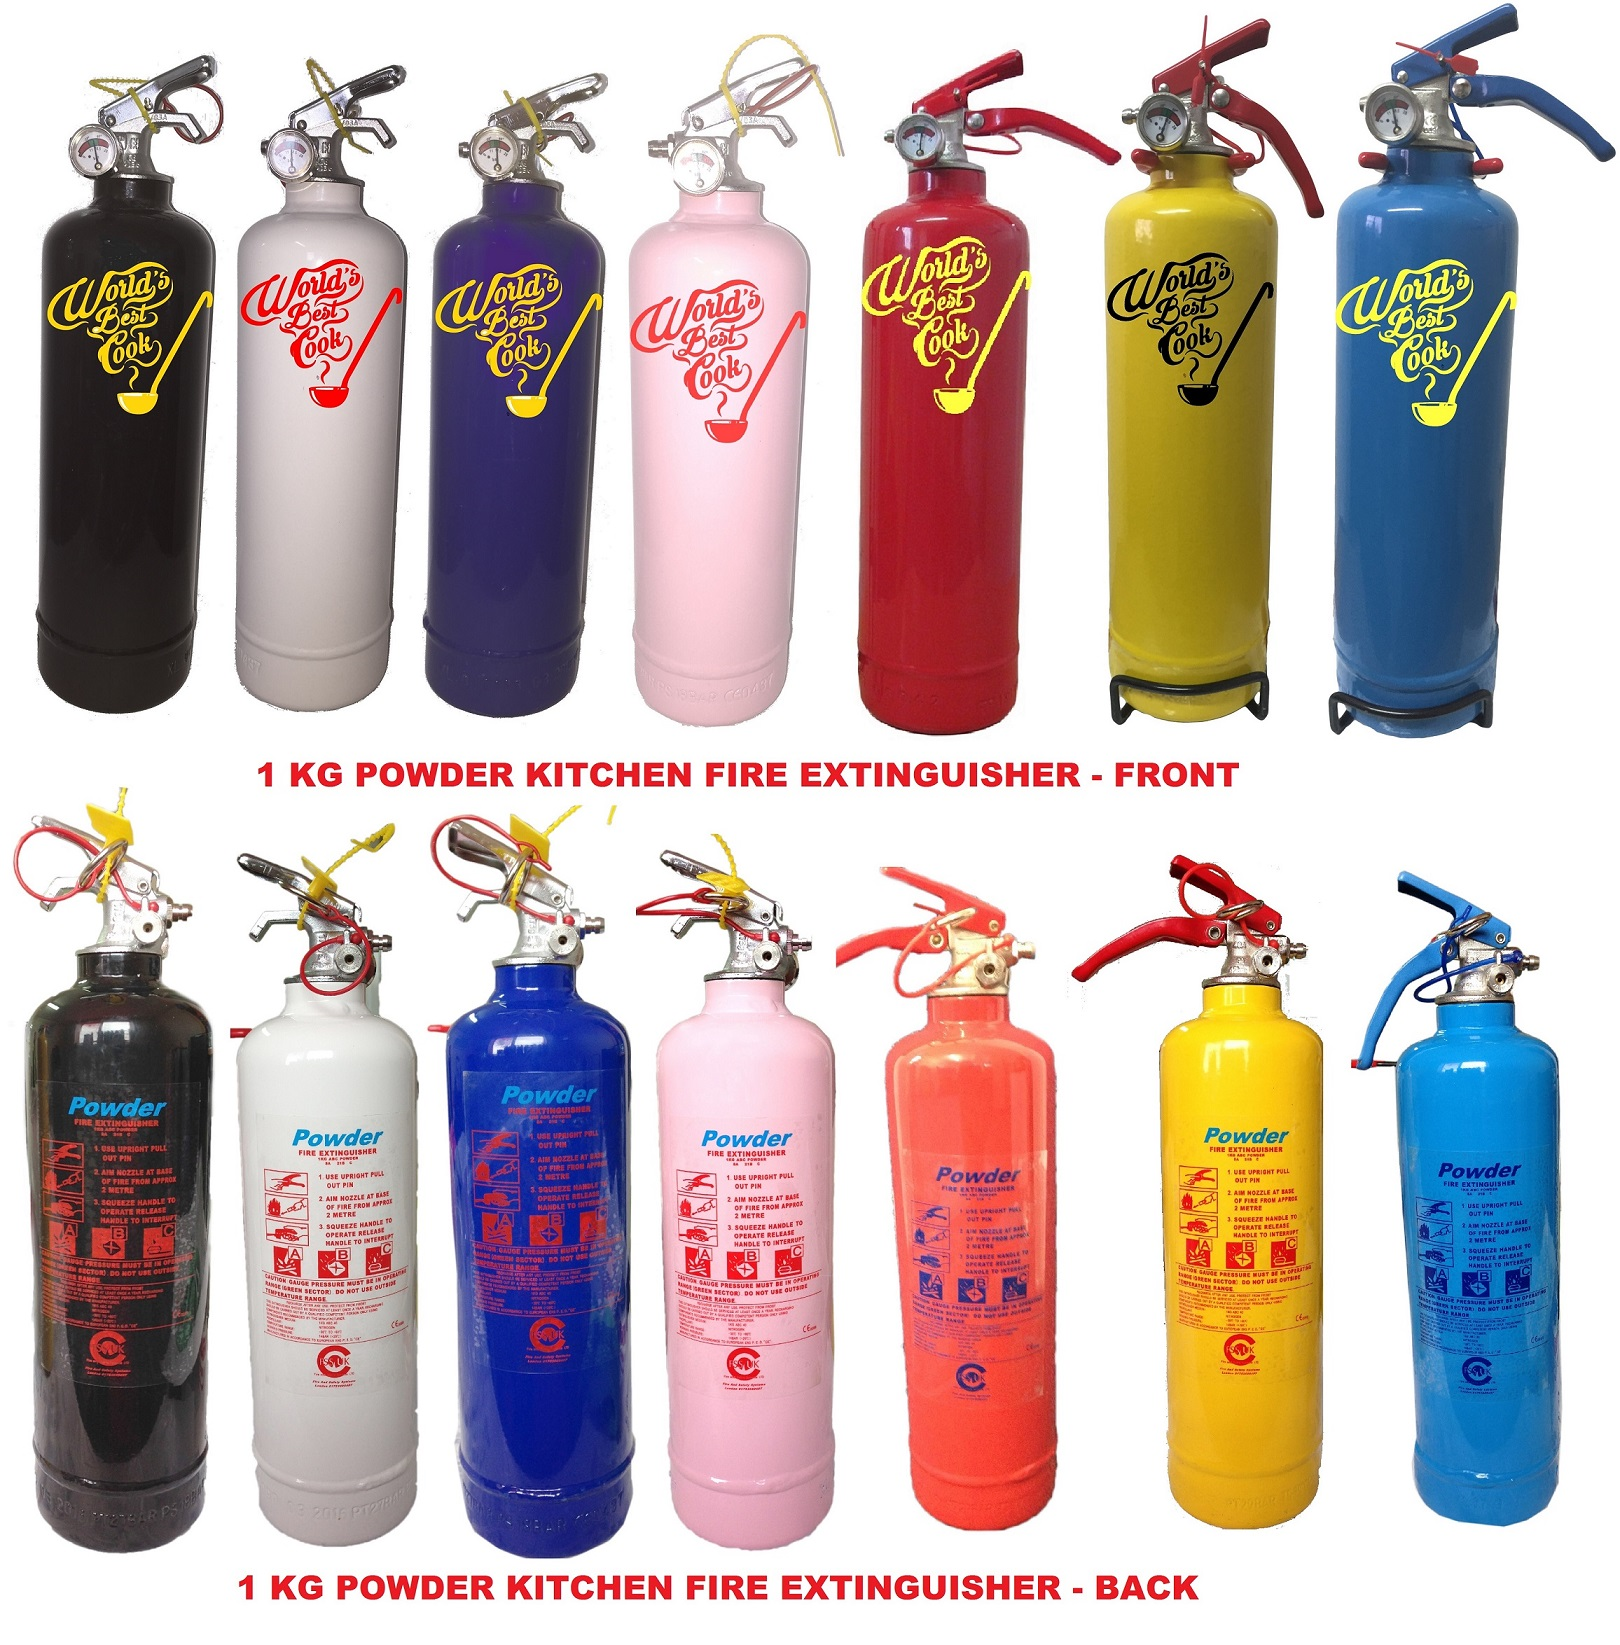 fire extinguisher for kitchen use herbs and spices car office home